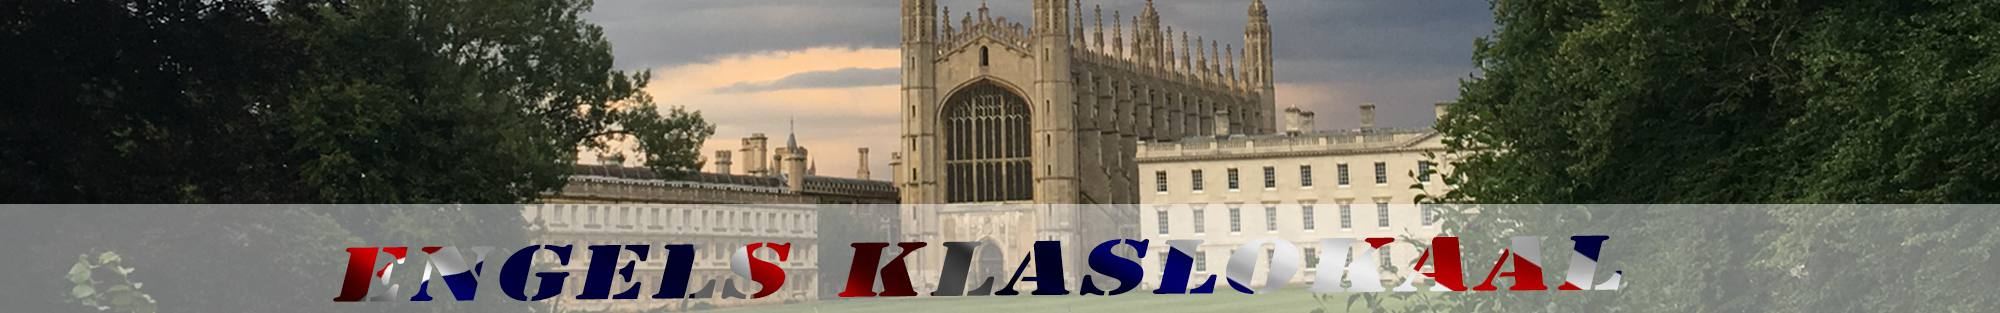 king's college cambridge header engels klaslokaal